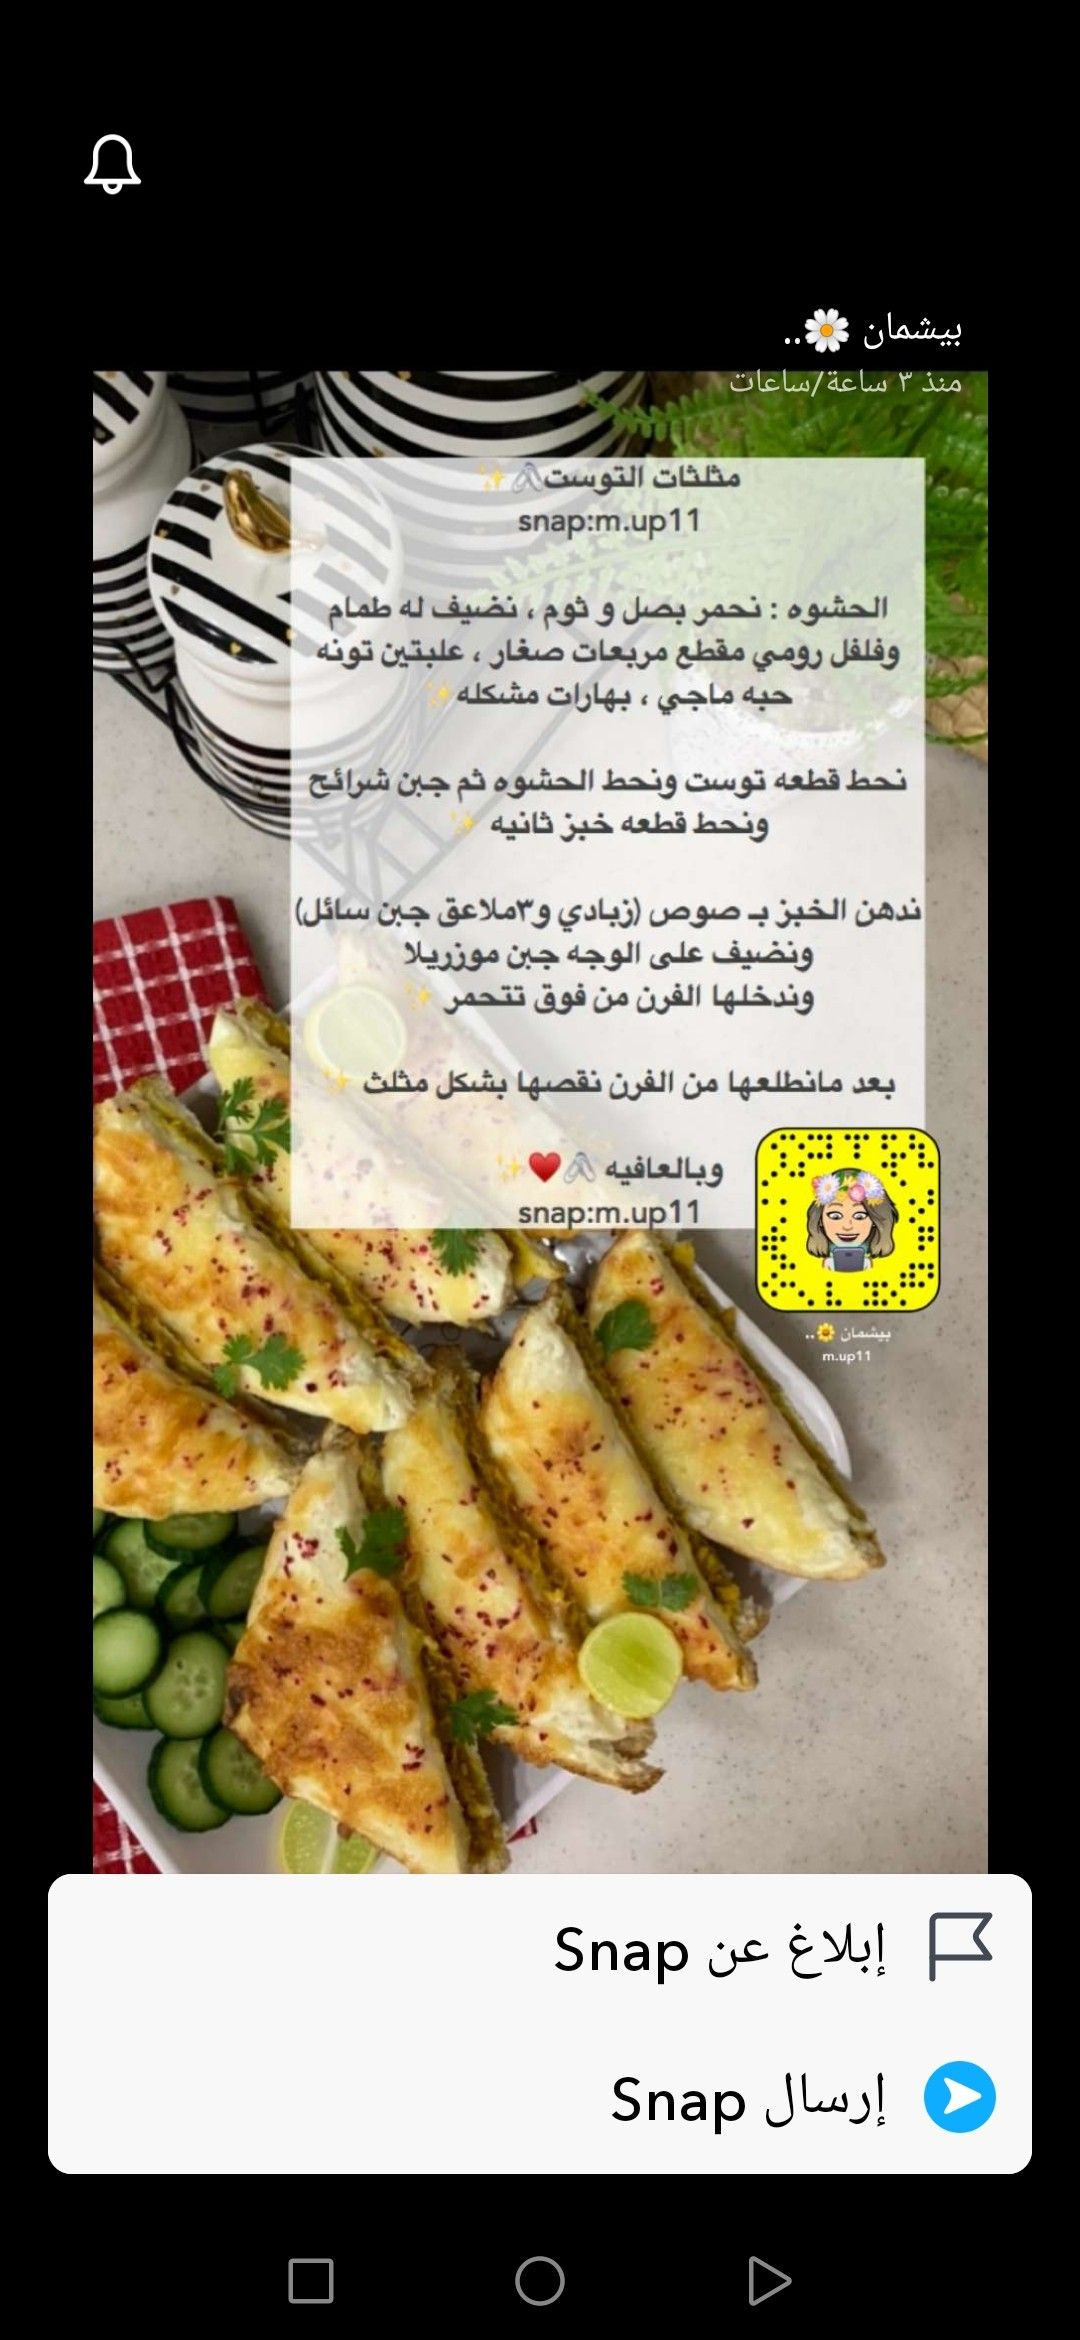 Pin By أم نائف On طبخاتي Food Hacks Cooking Food And Drink